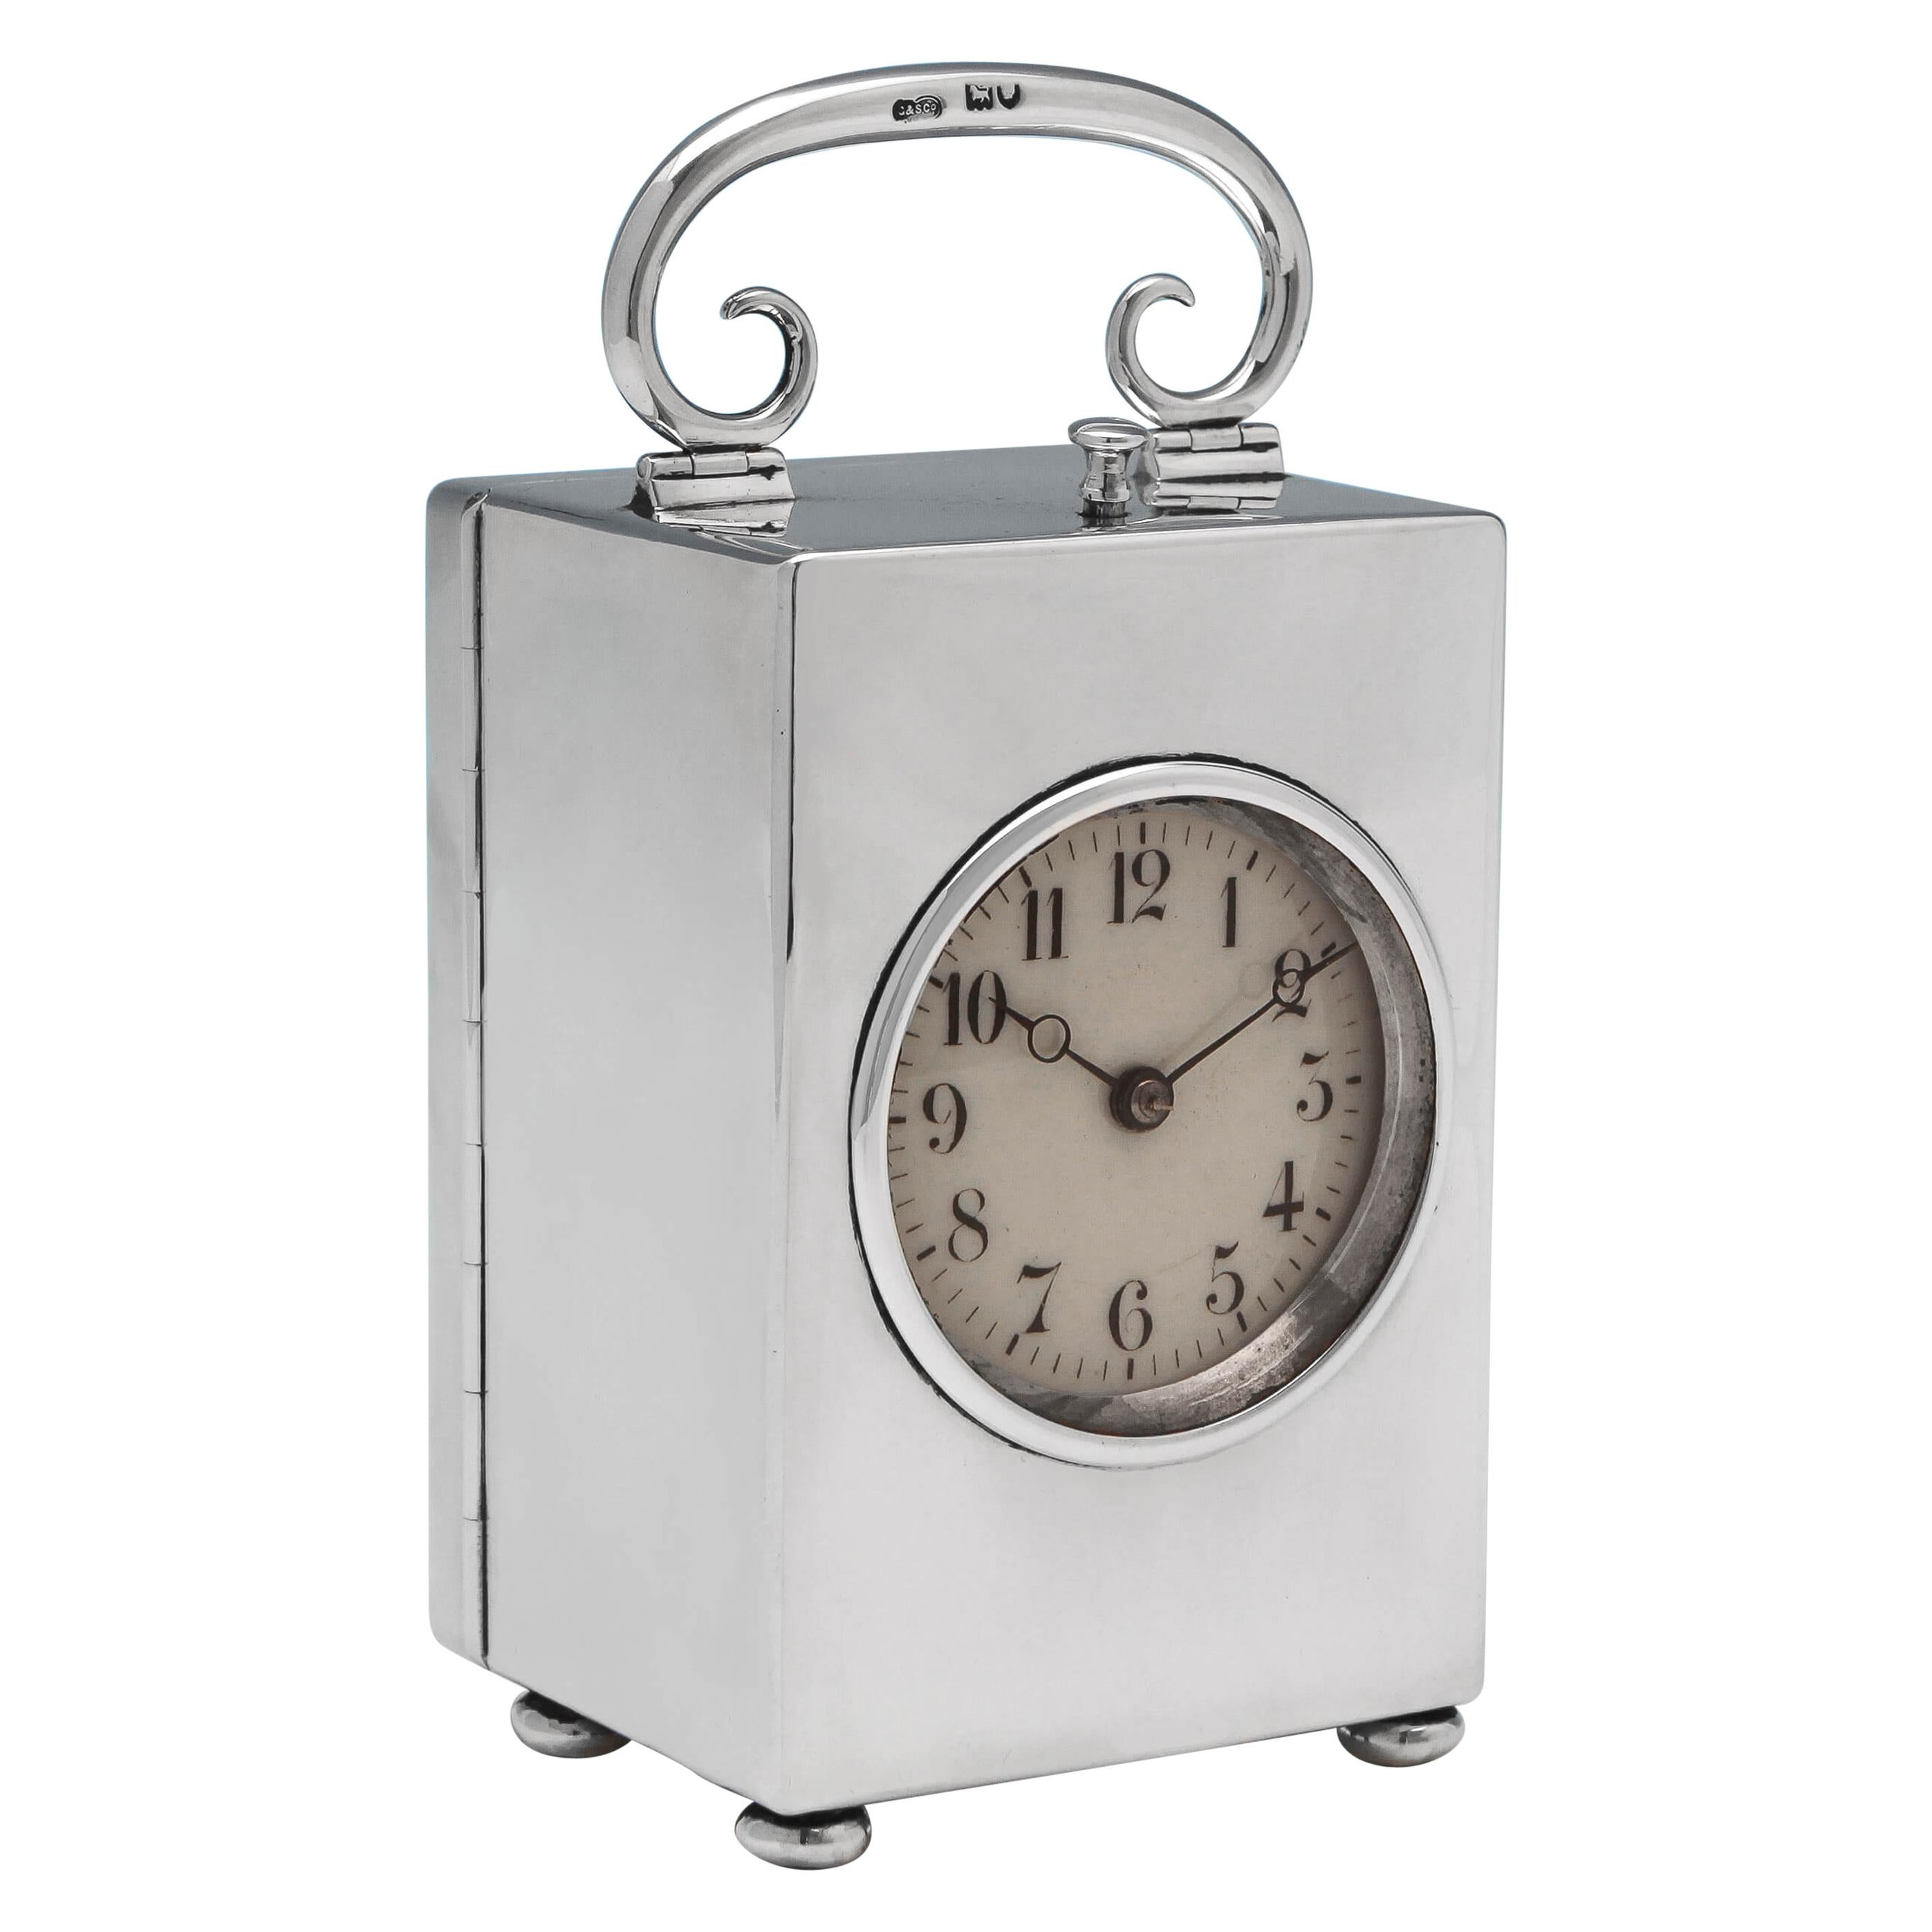 Victorian Antique Sterling Silver Chiming Repeater Clock from 1899